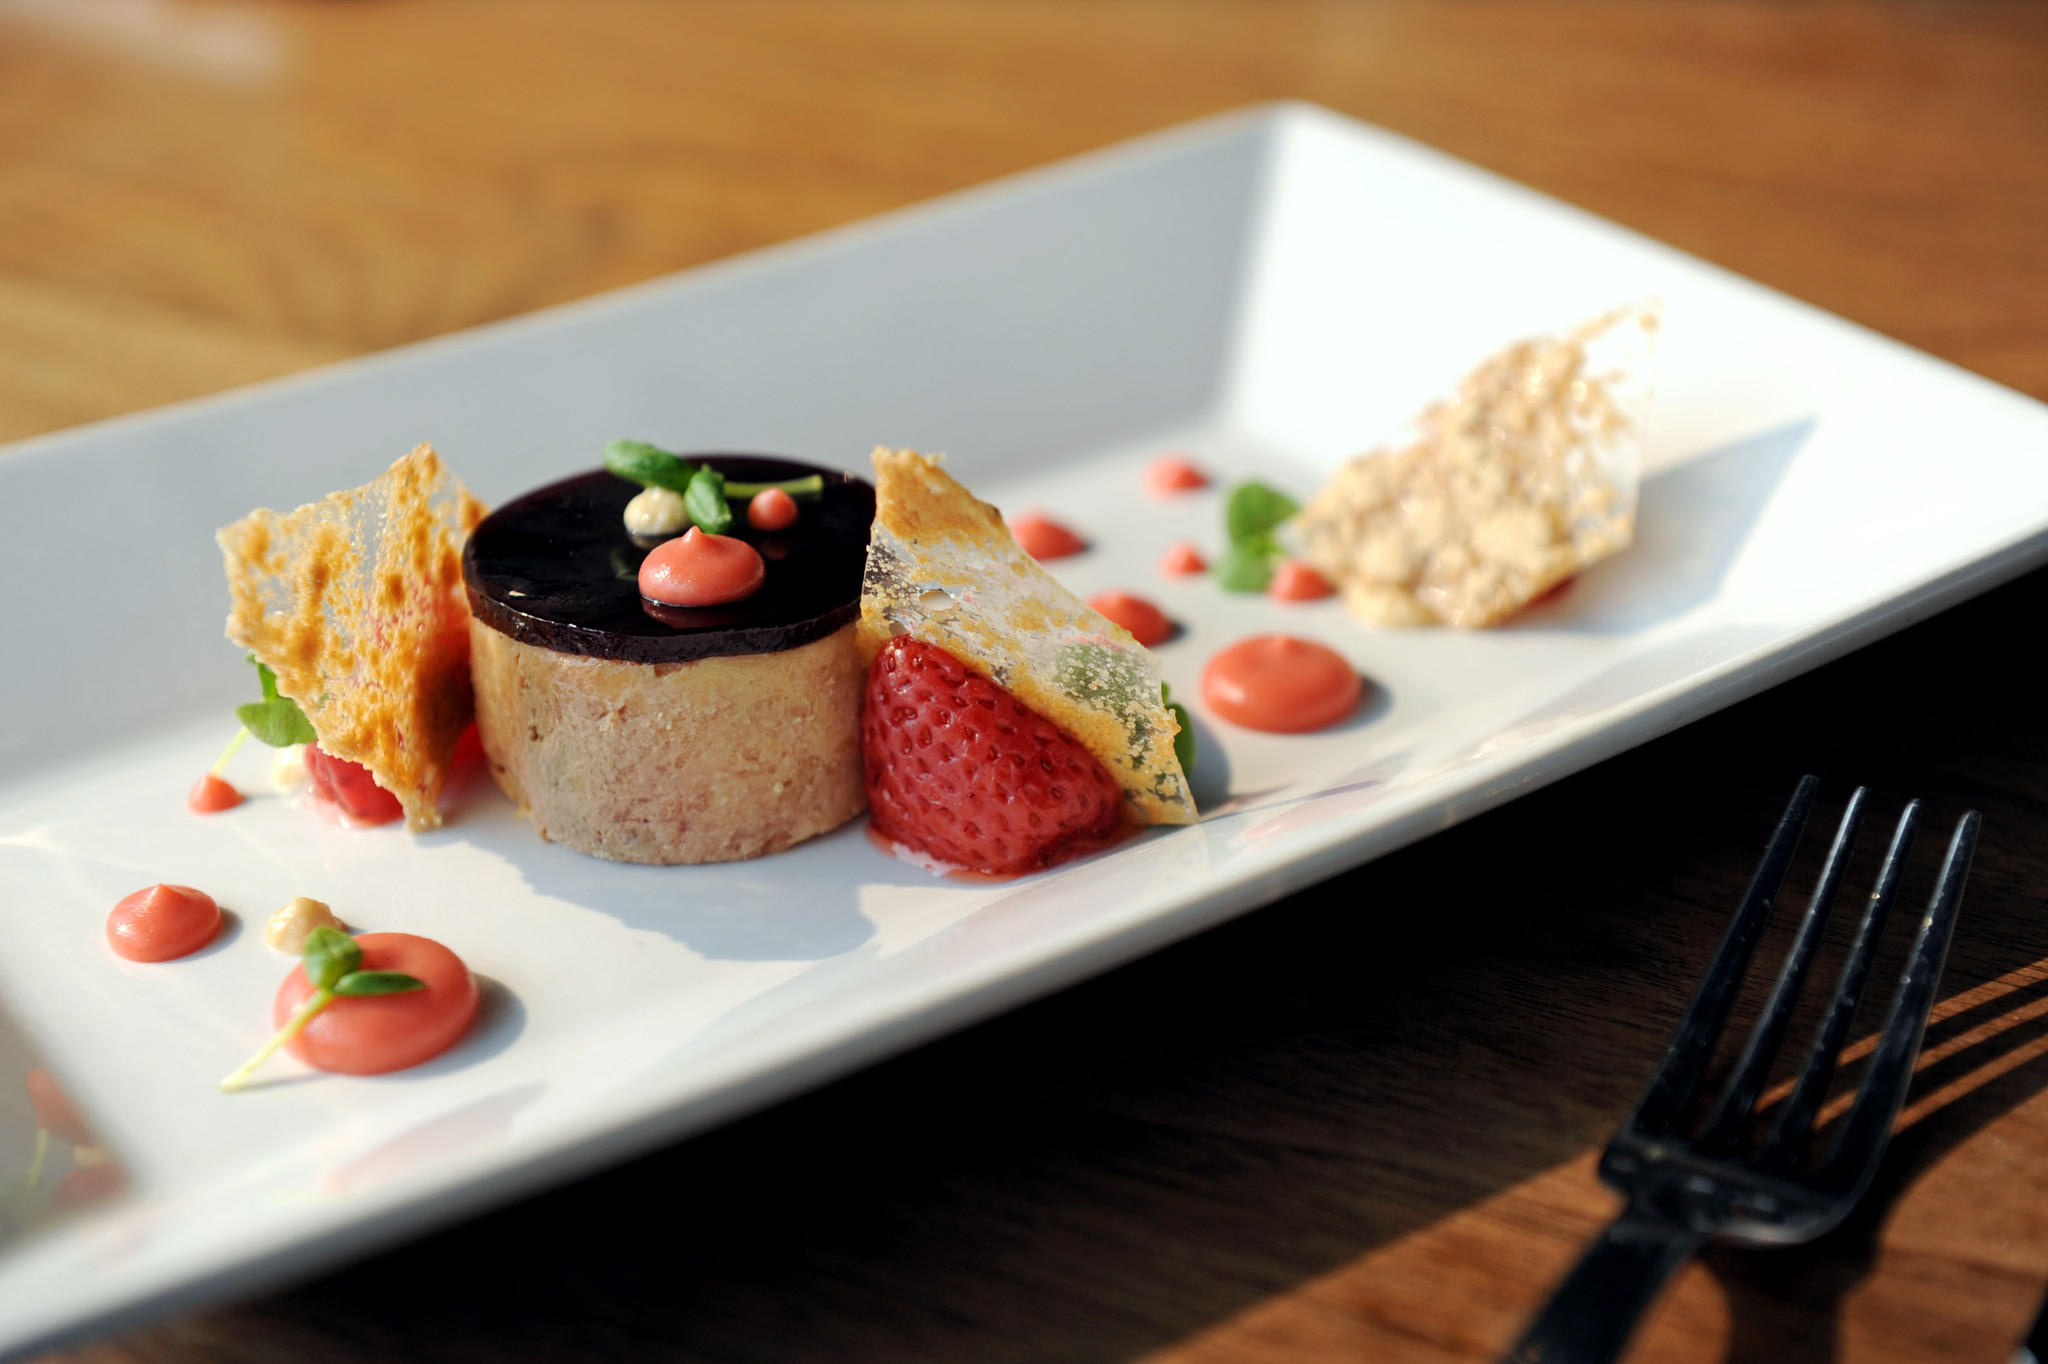 The Hudson Valley foie gras torchon includes peanut butter crisps, cassis gelee and pickled strawberries.